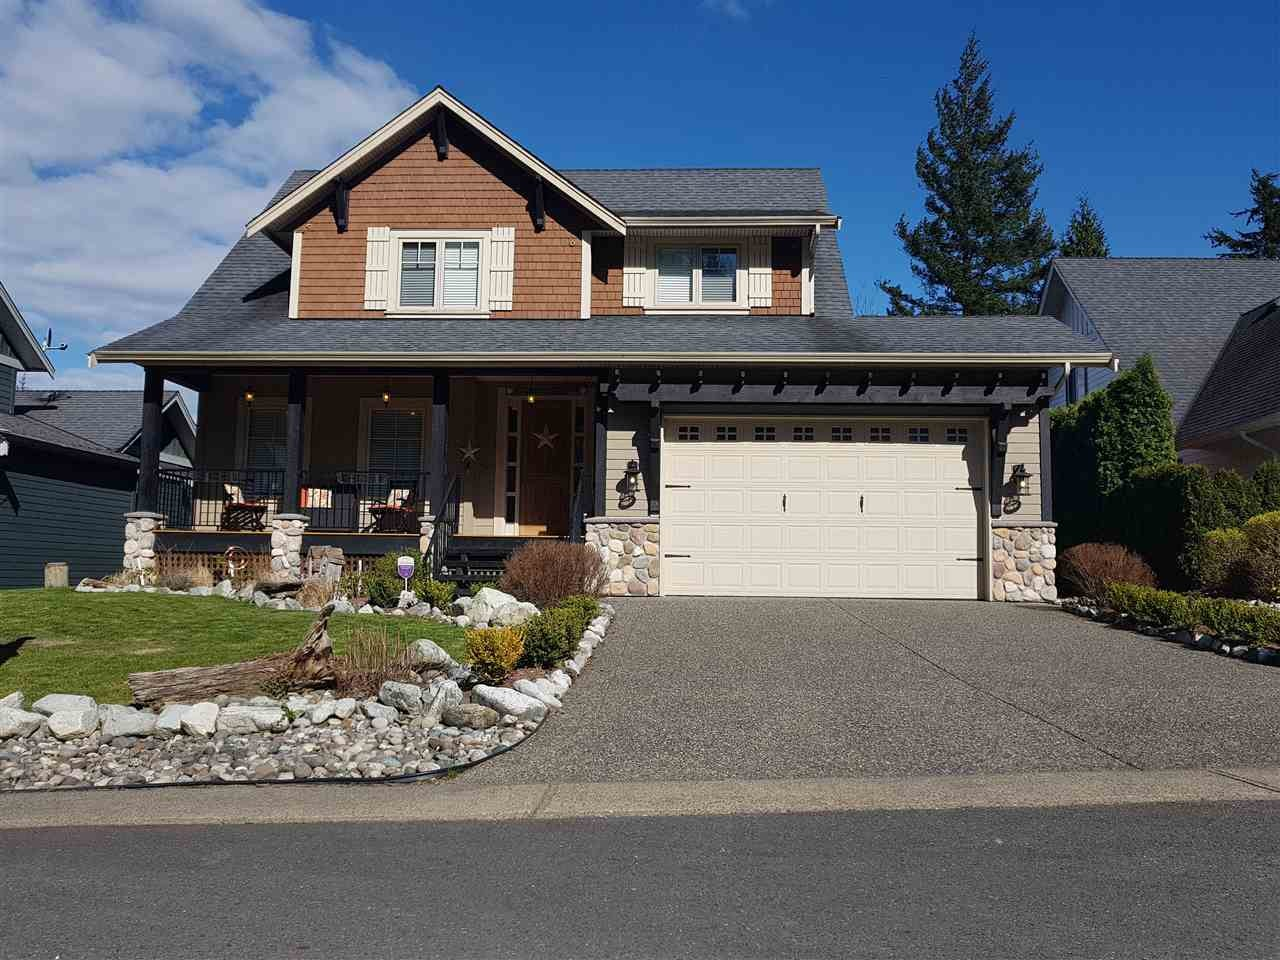 2 14505 MORRIS VALLEY ROAD - Lake Errock House/Single Family for sale, 4 Bedrooms (R2564371) - #1